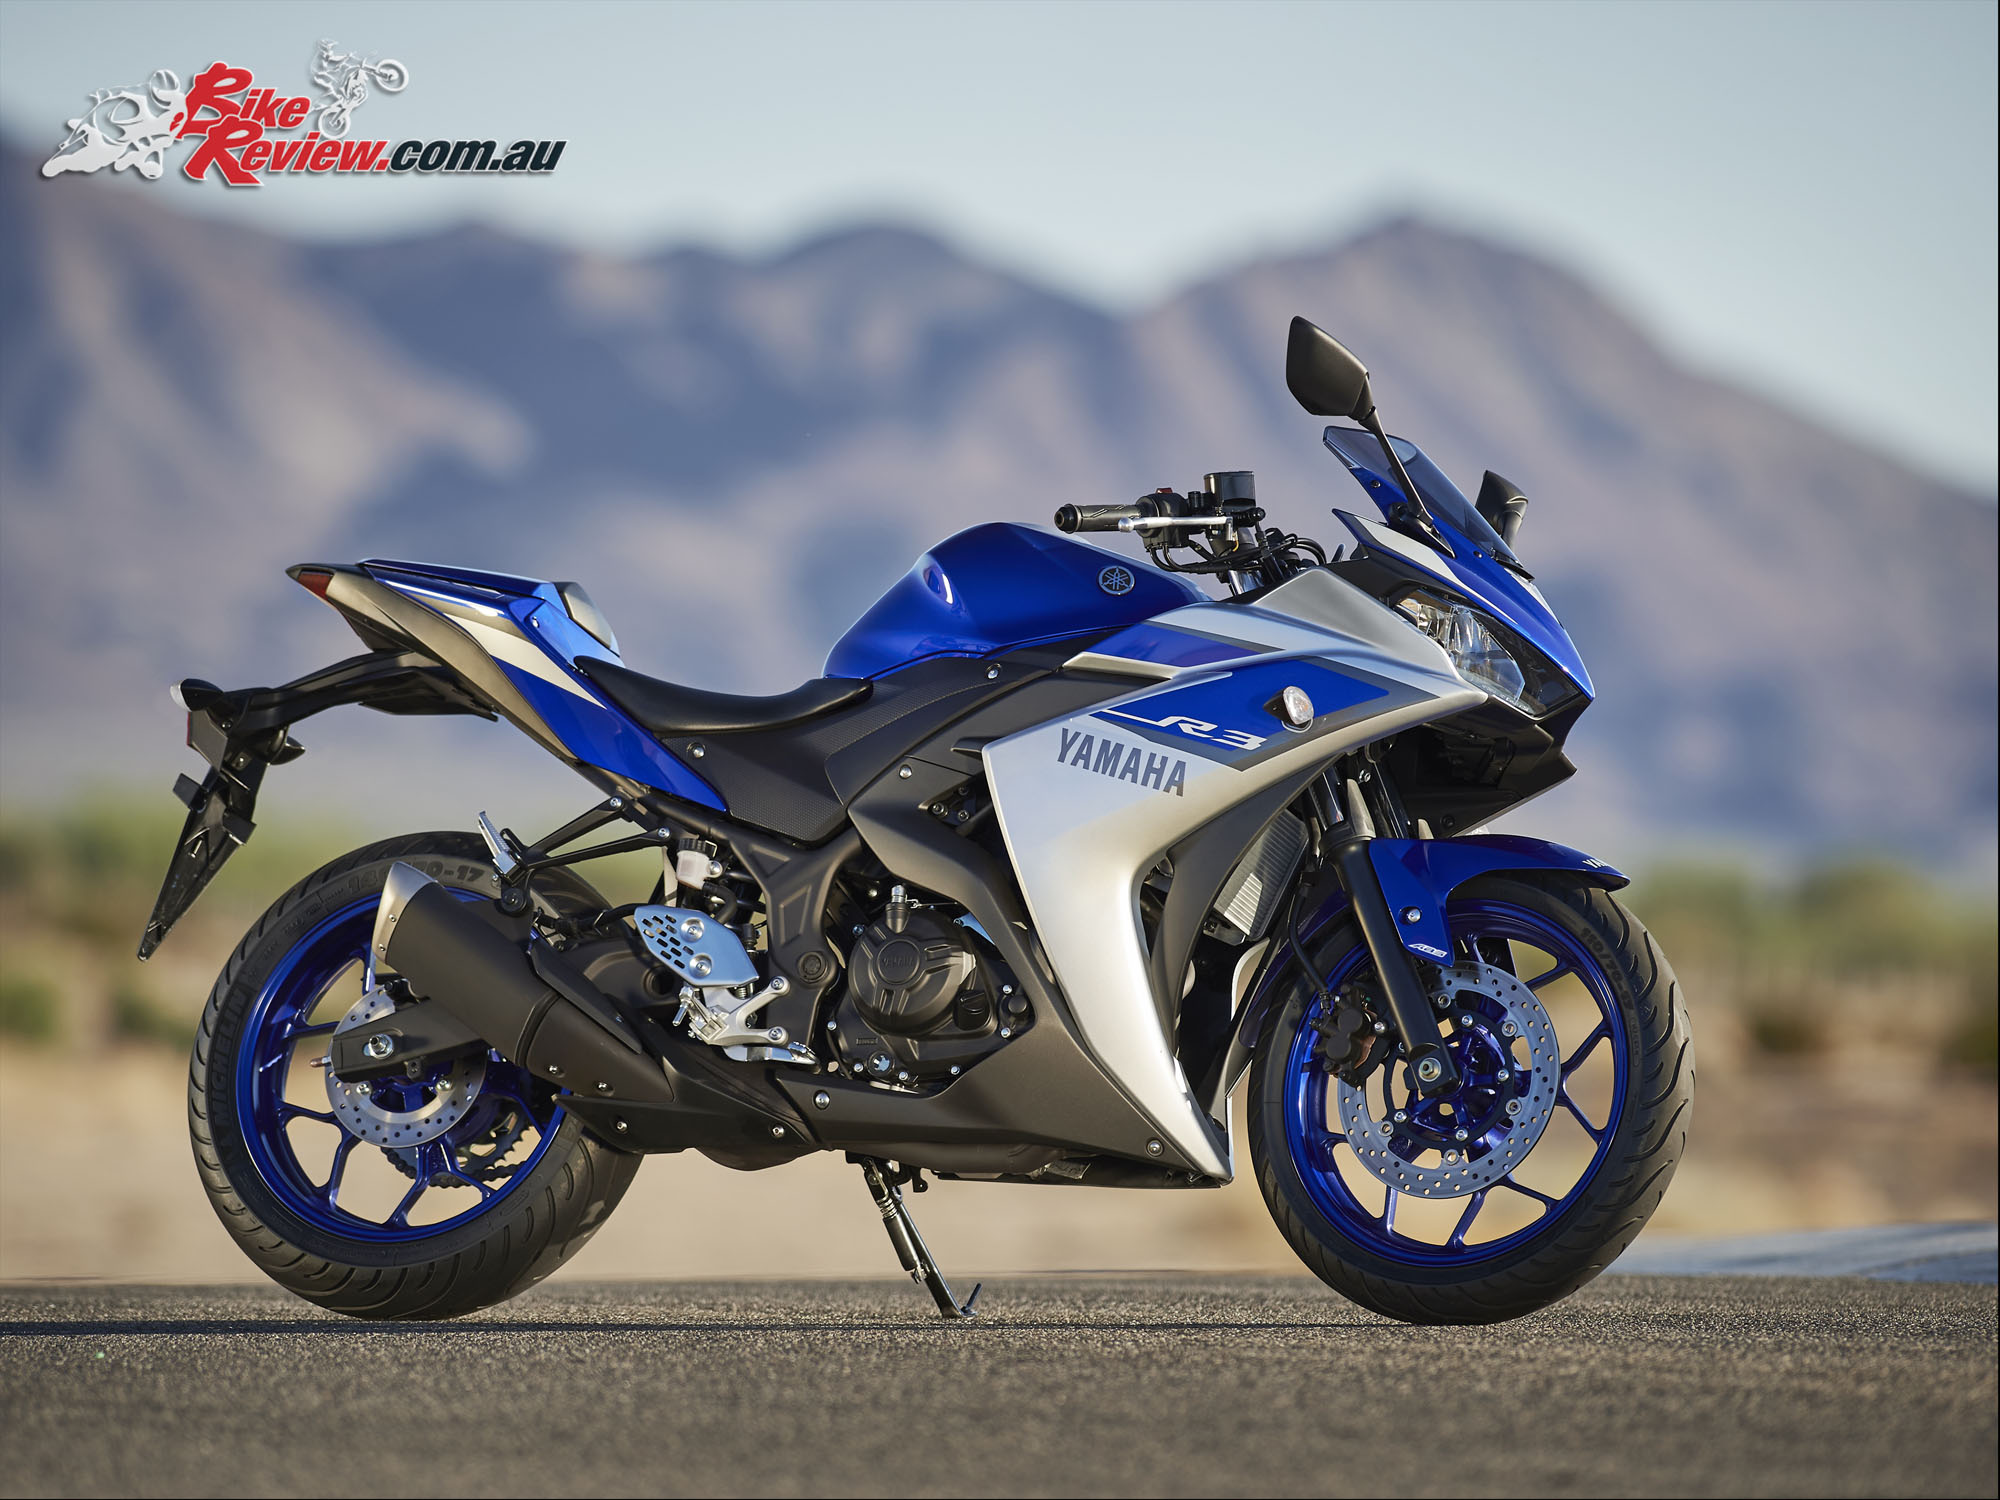 Yamaha r3 review